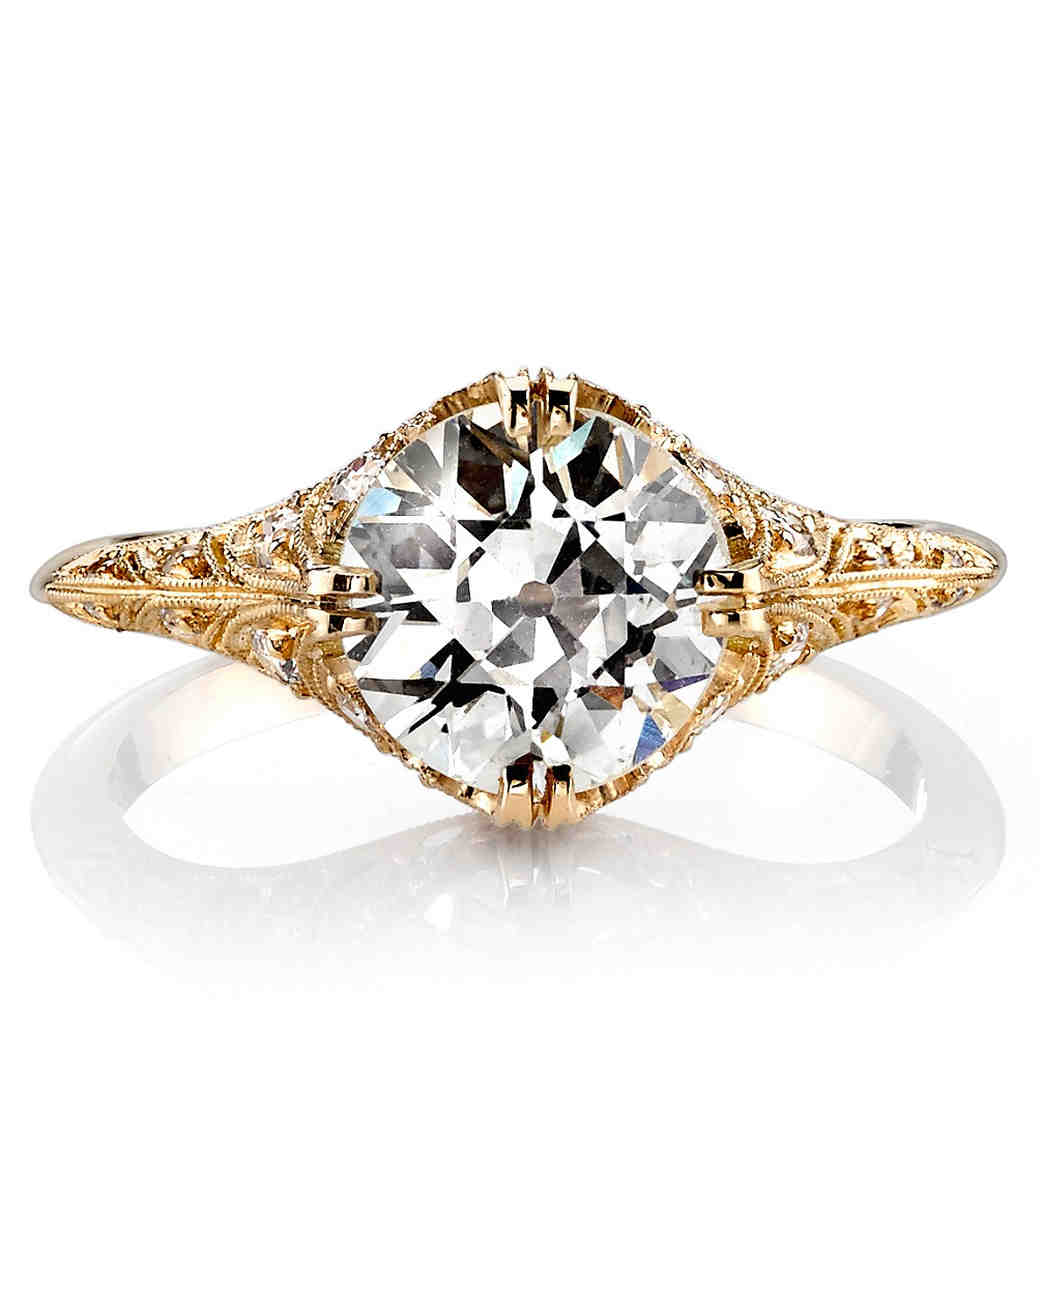 Single Stone Charlotte Eurocut Yellow Gold Engagement Ring